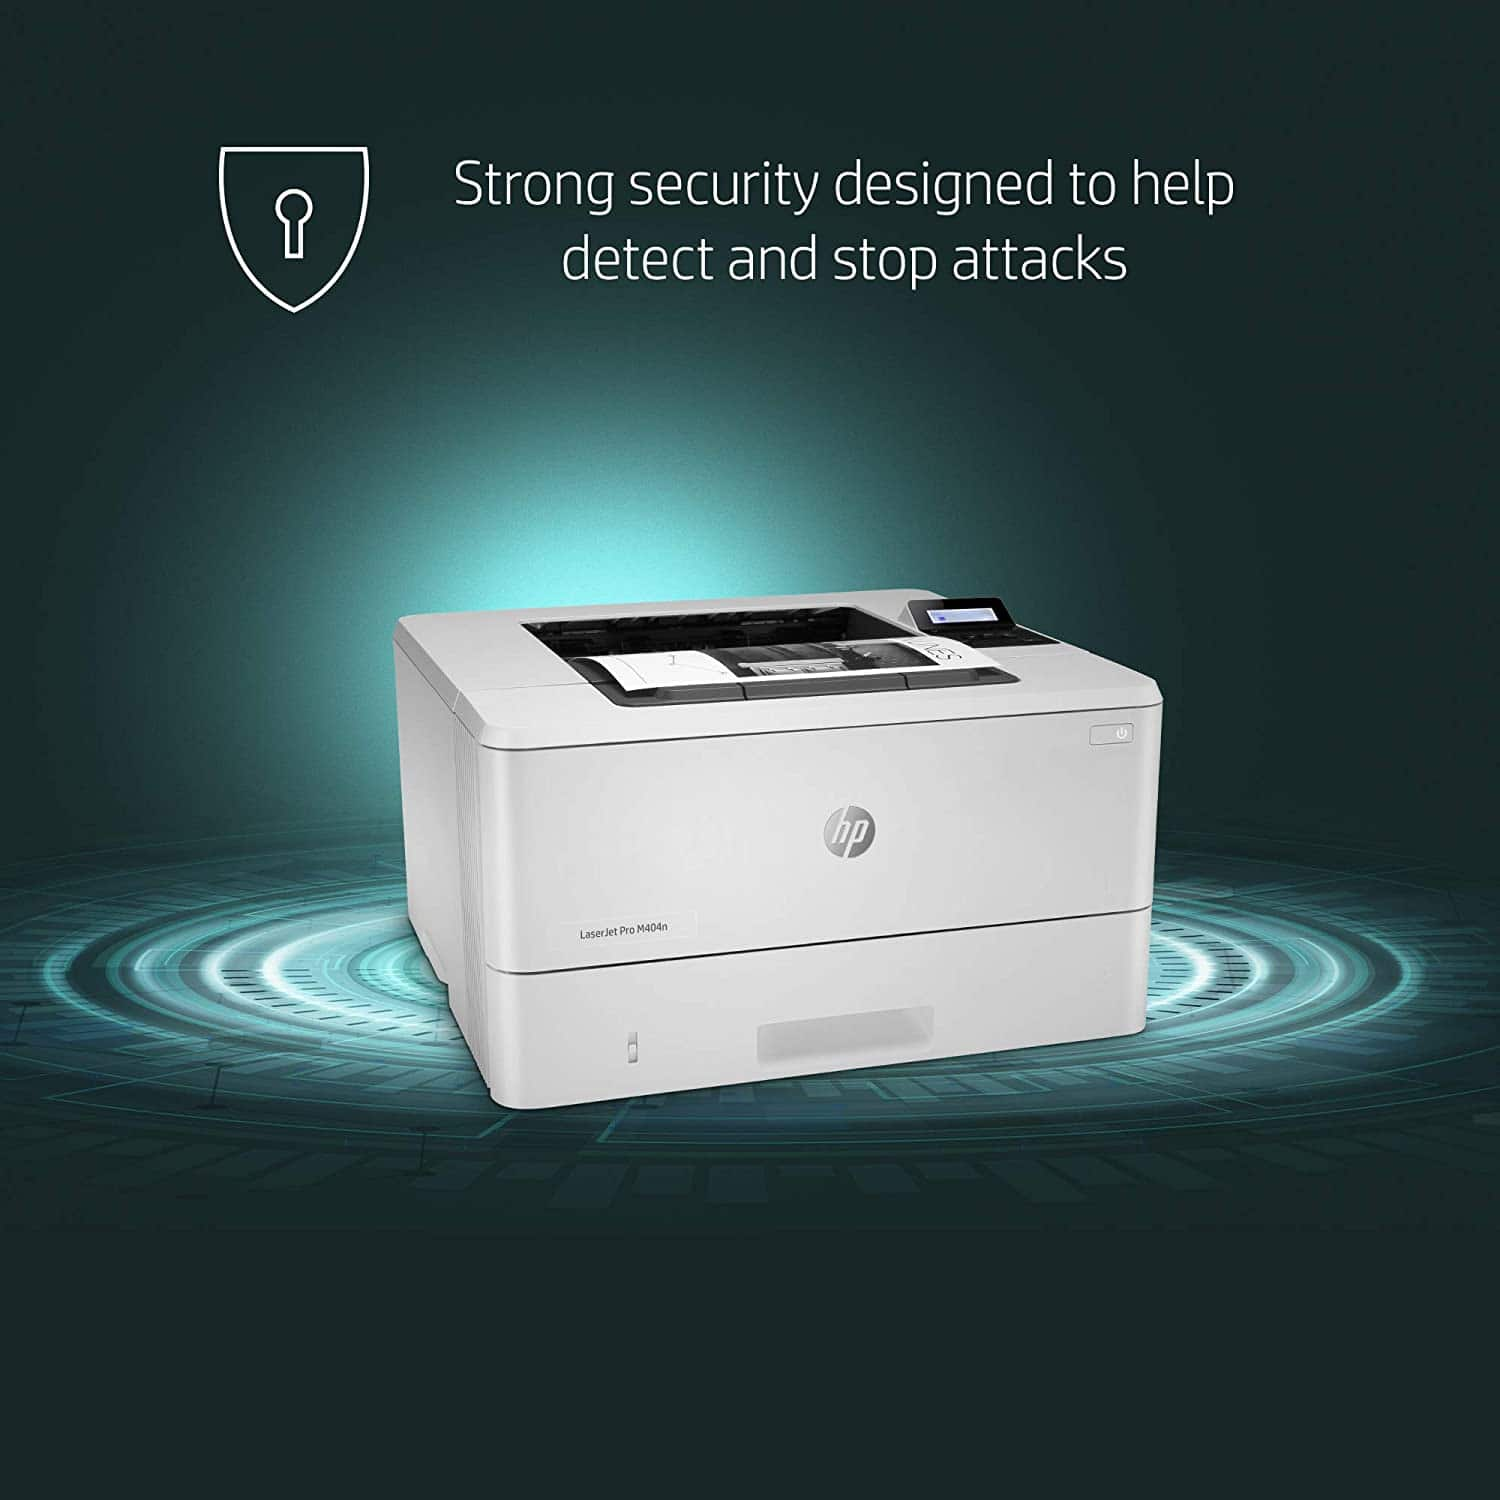 HP LaserJet Pro M404n Laser Printer with Built-in Ethernet & Security Features $148.9